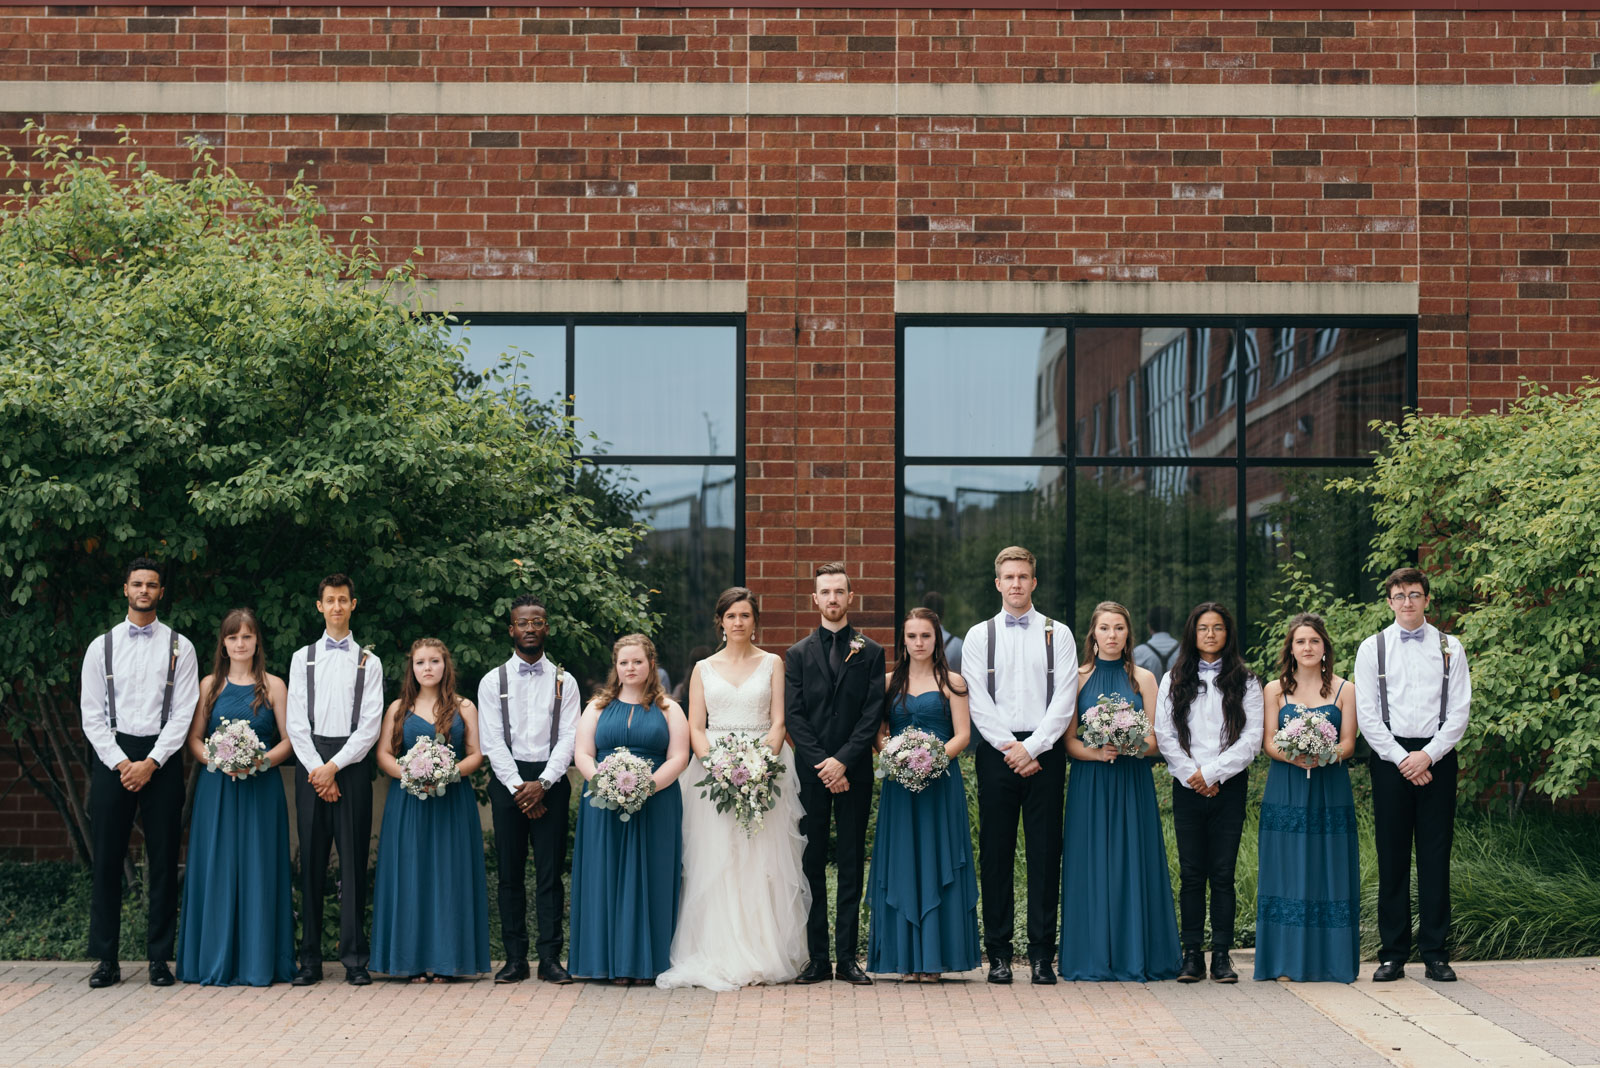 bridal party at Coralville Marriott Hotel Wedding